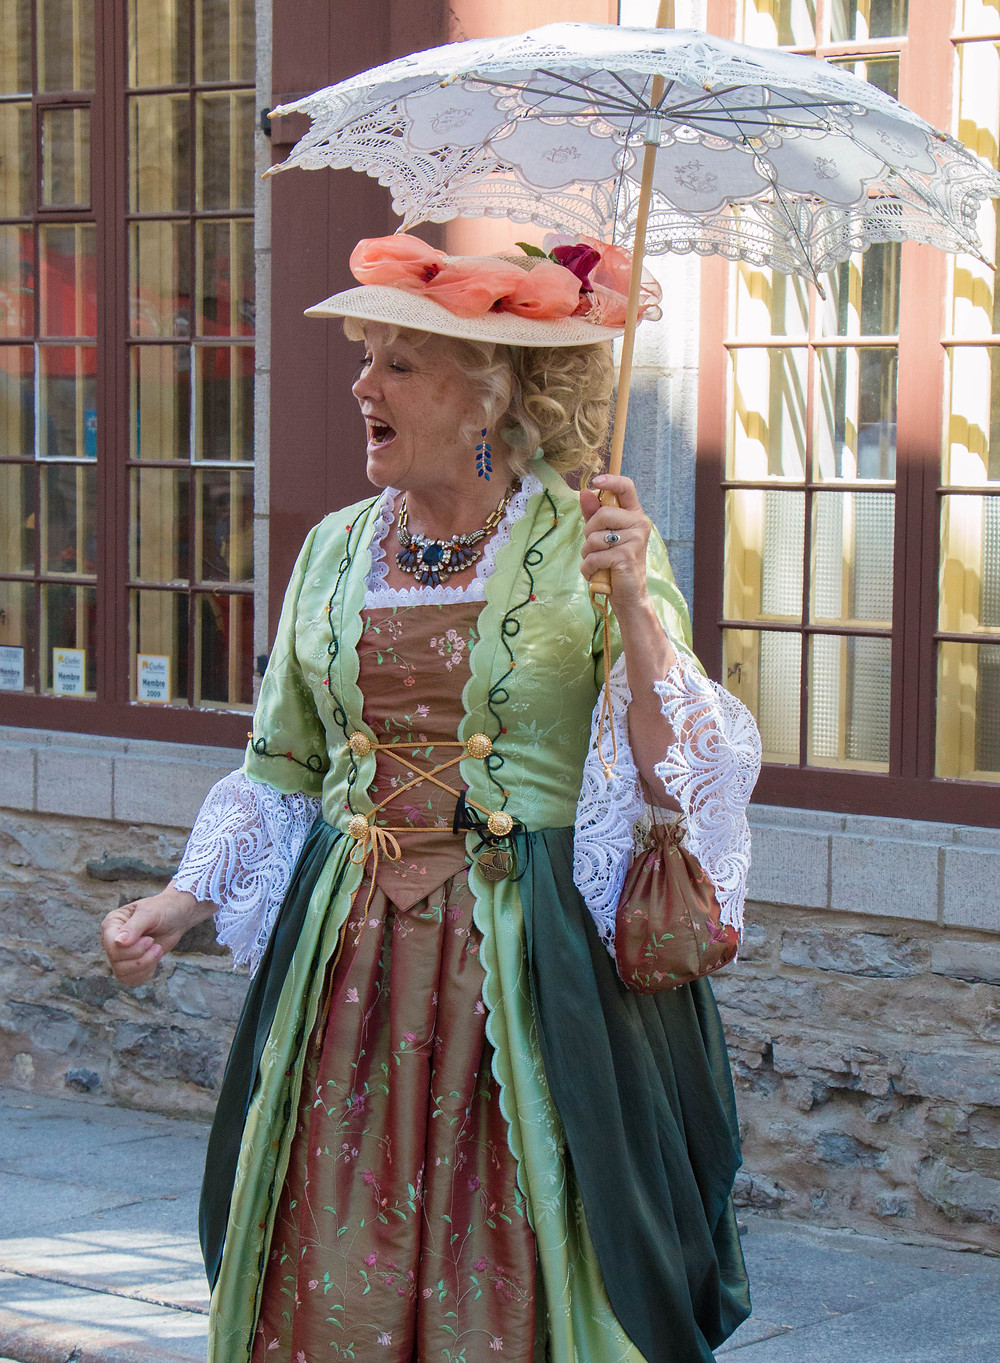 Lady in Costume, the New France Festival, Québec City